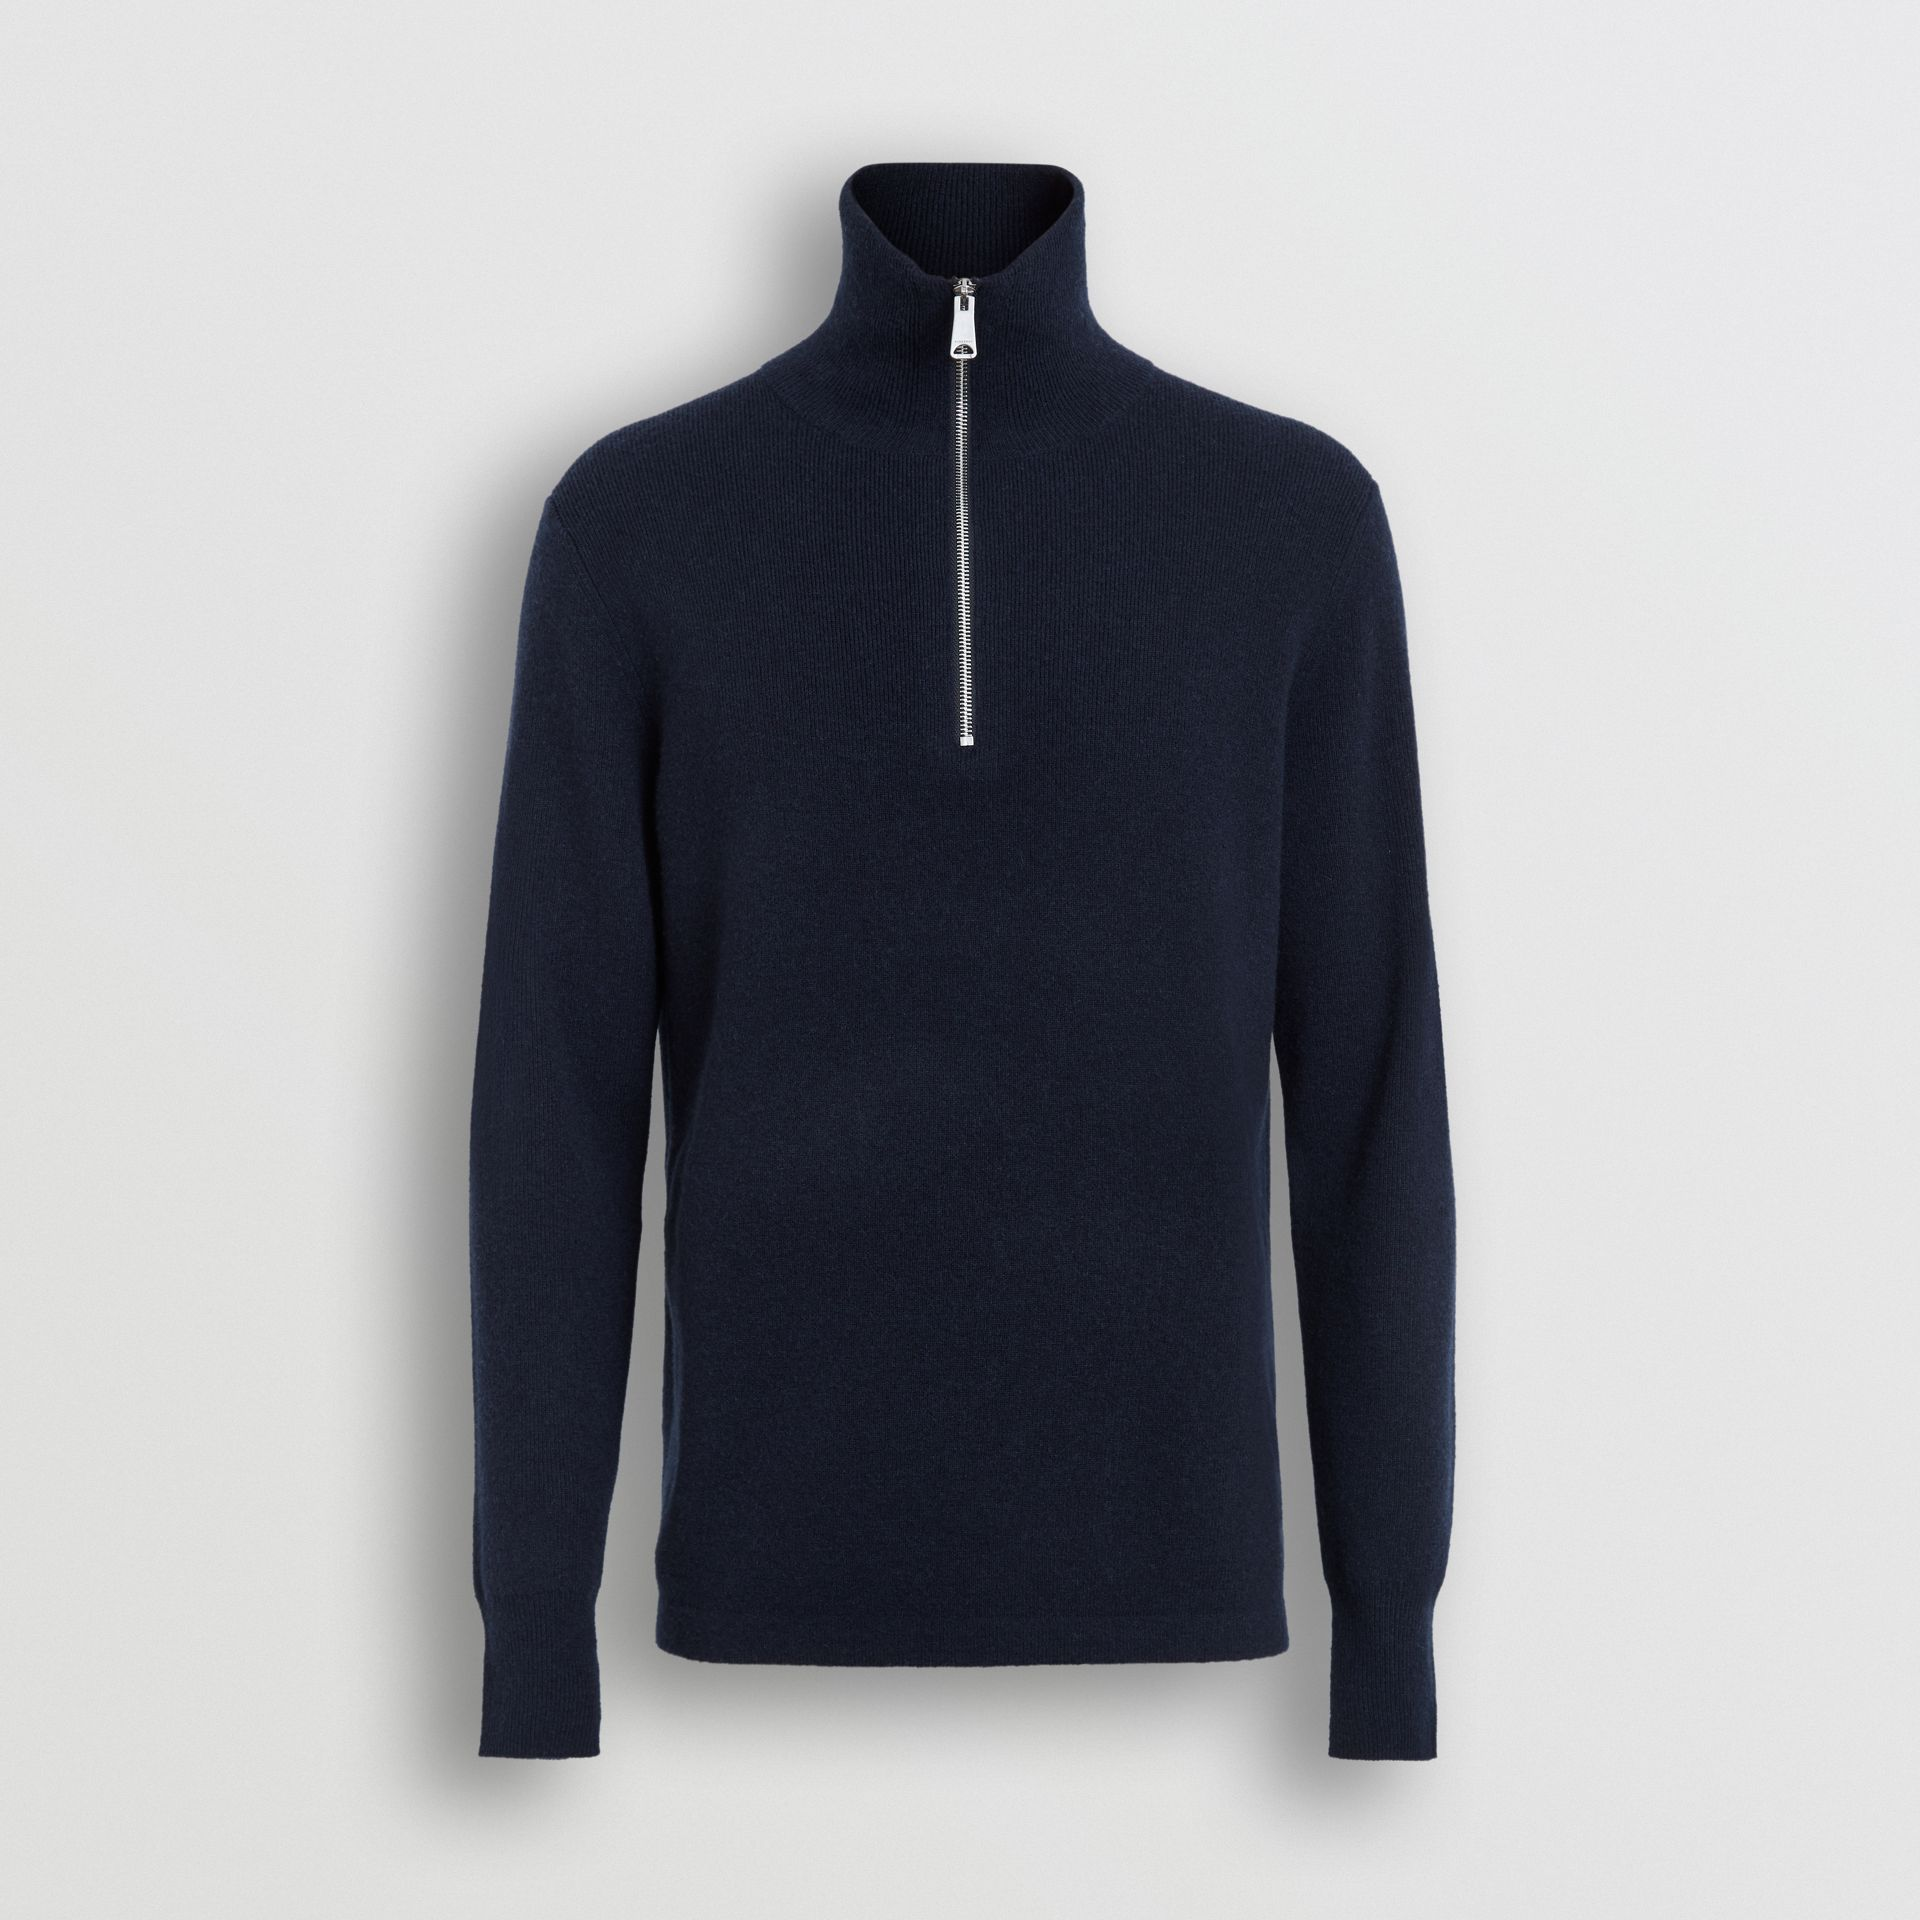 Rib Knit Cashmere Half-zip Sweater in Navy - Men | Burberry - gallery image 3